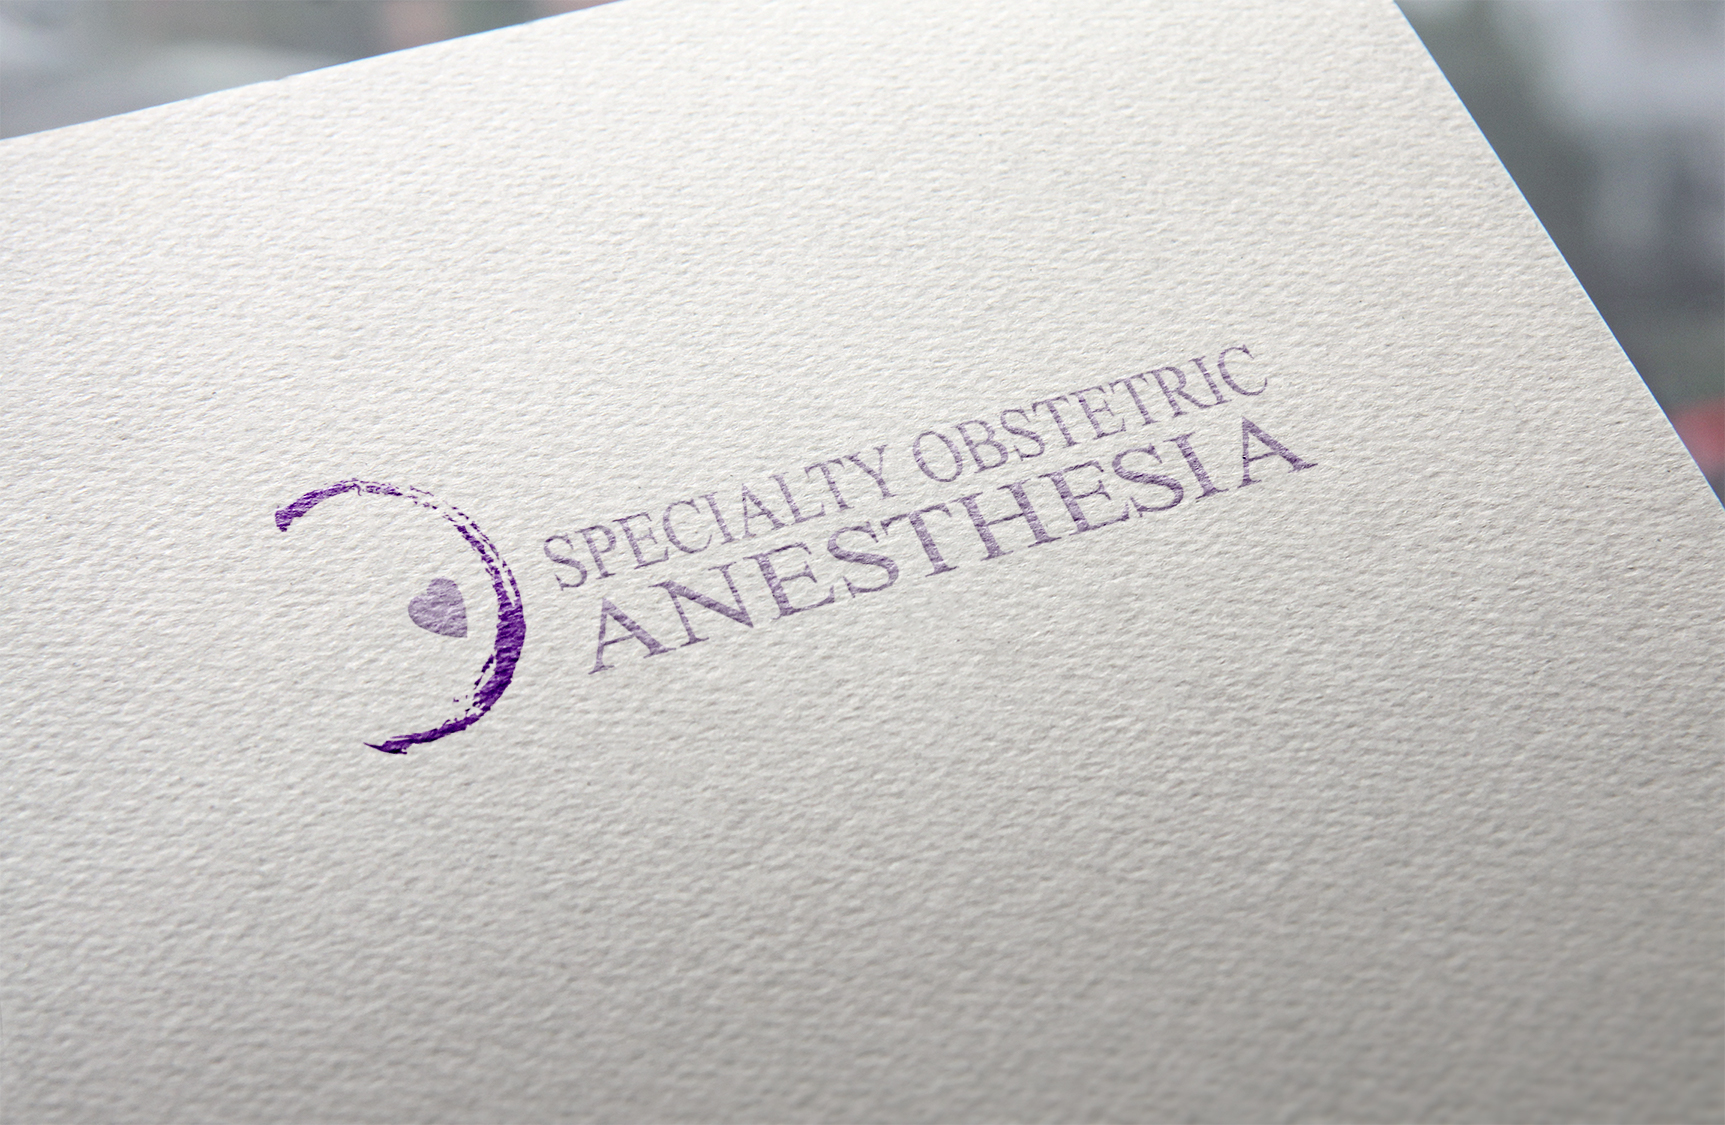 LOGO l Speciality Obstetric Anesthesia